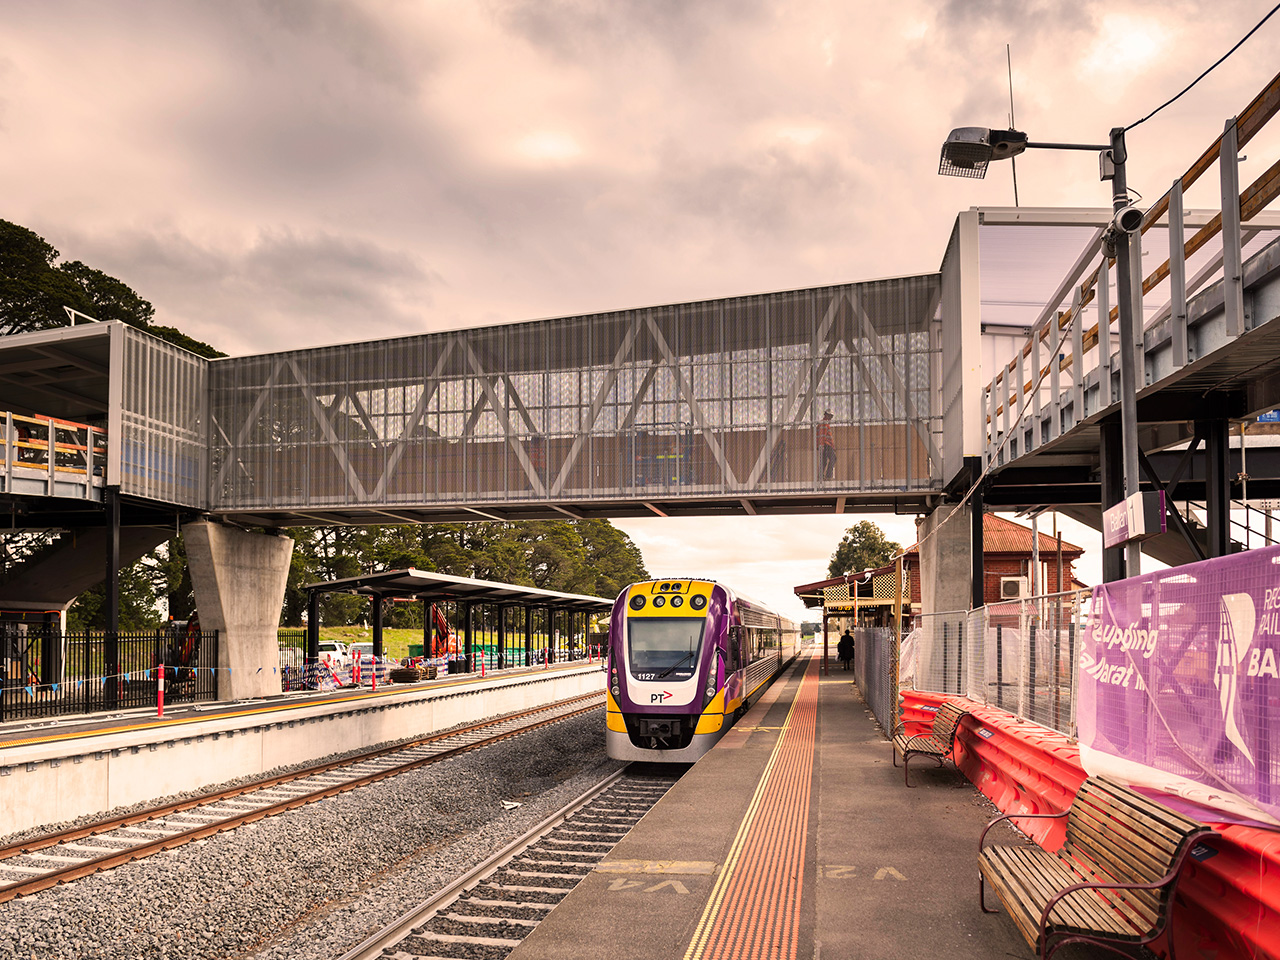 Station upgrades nearing completion